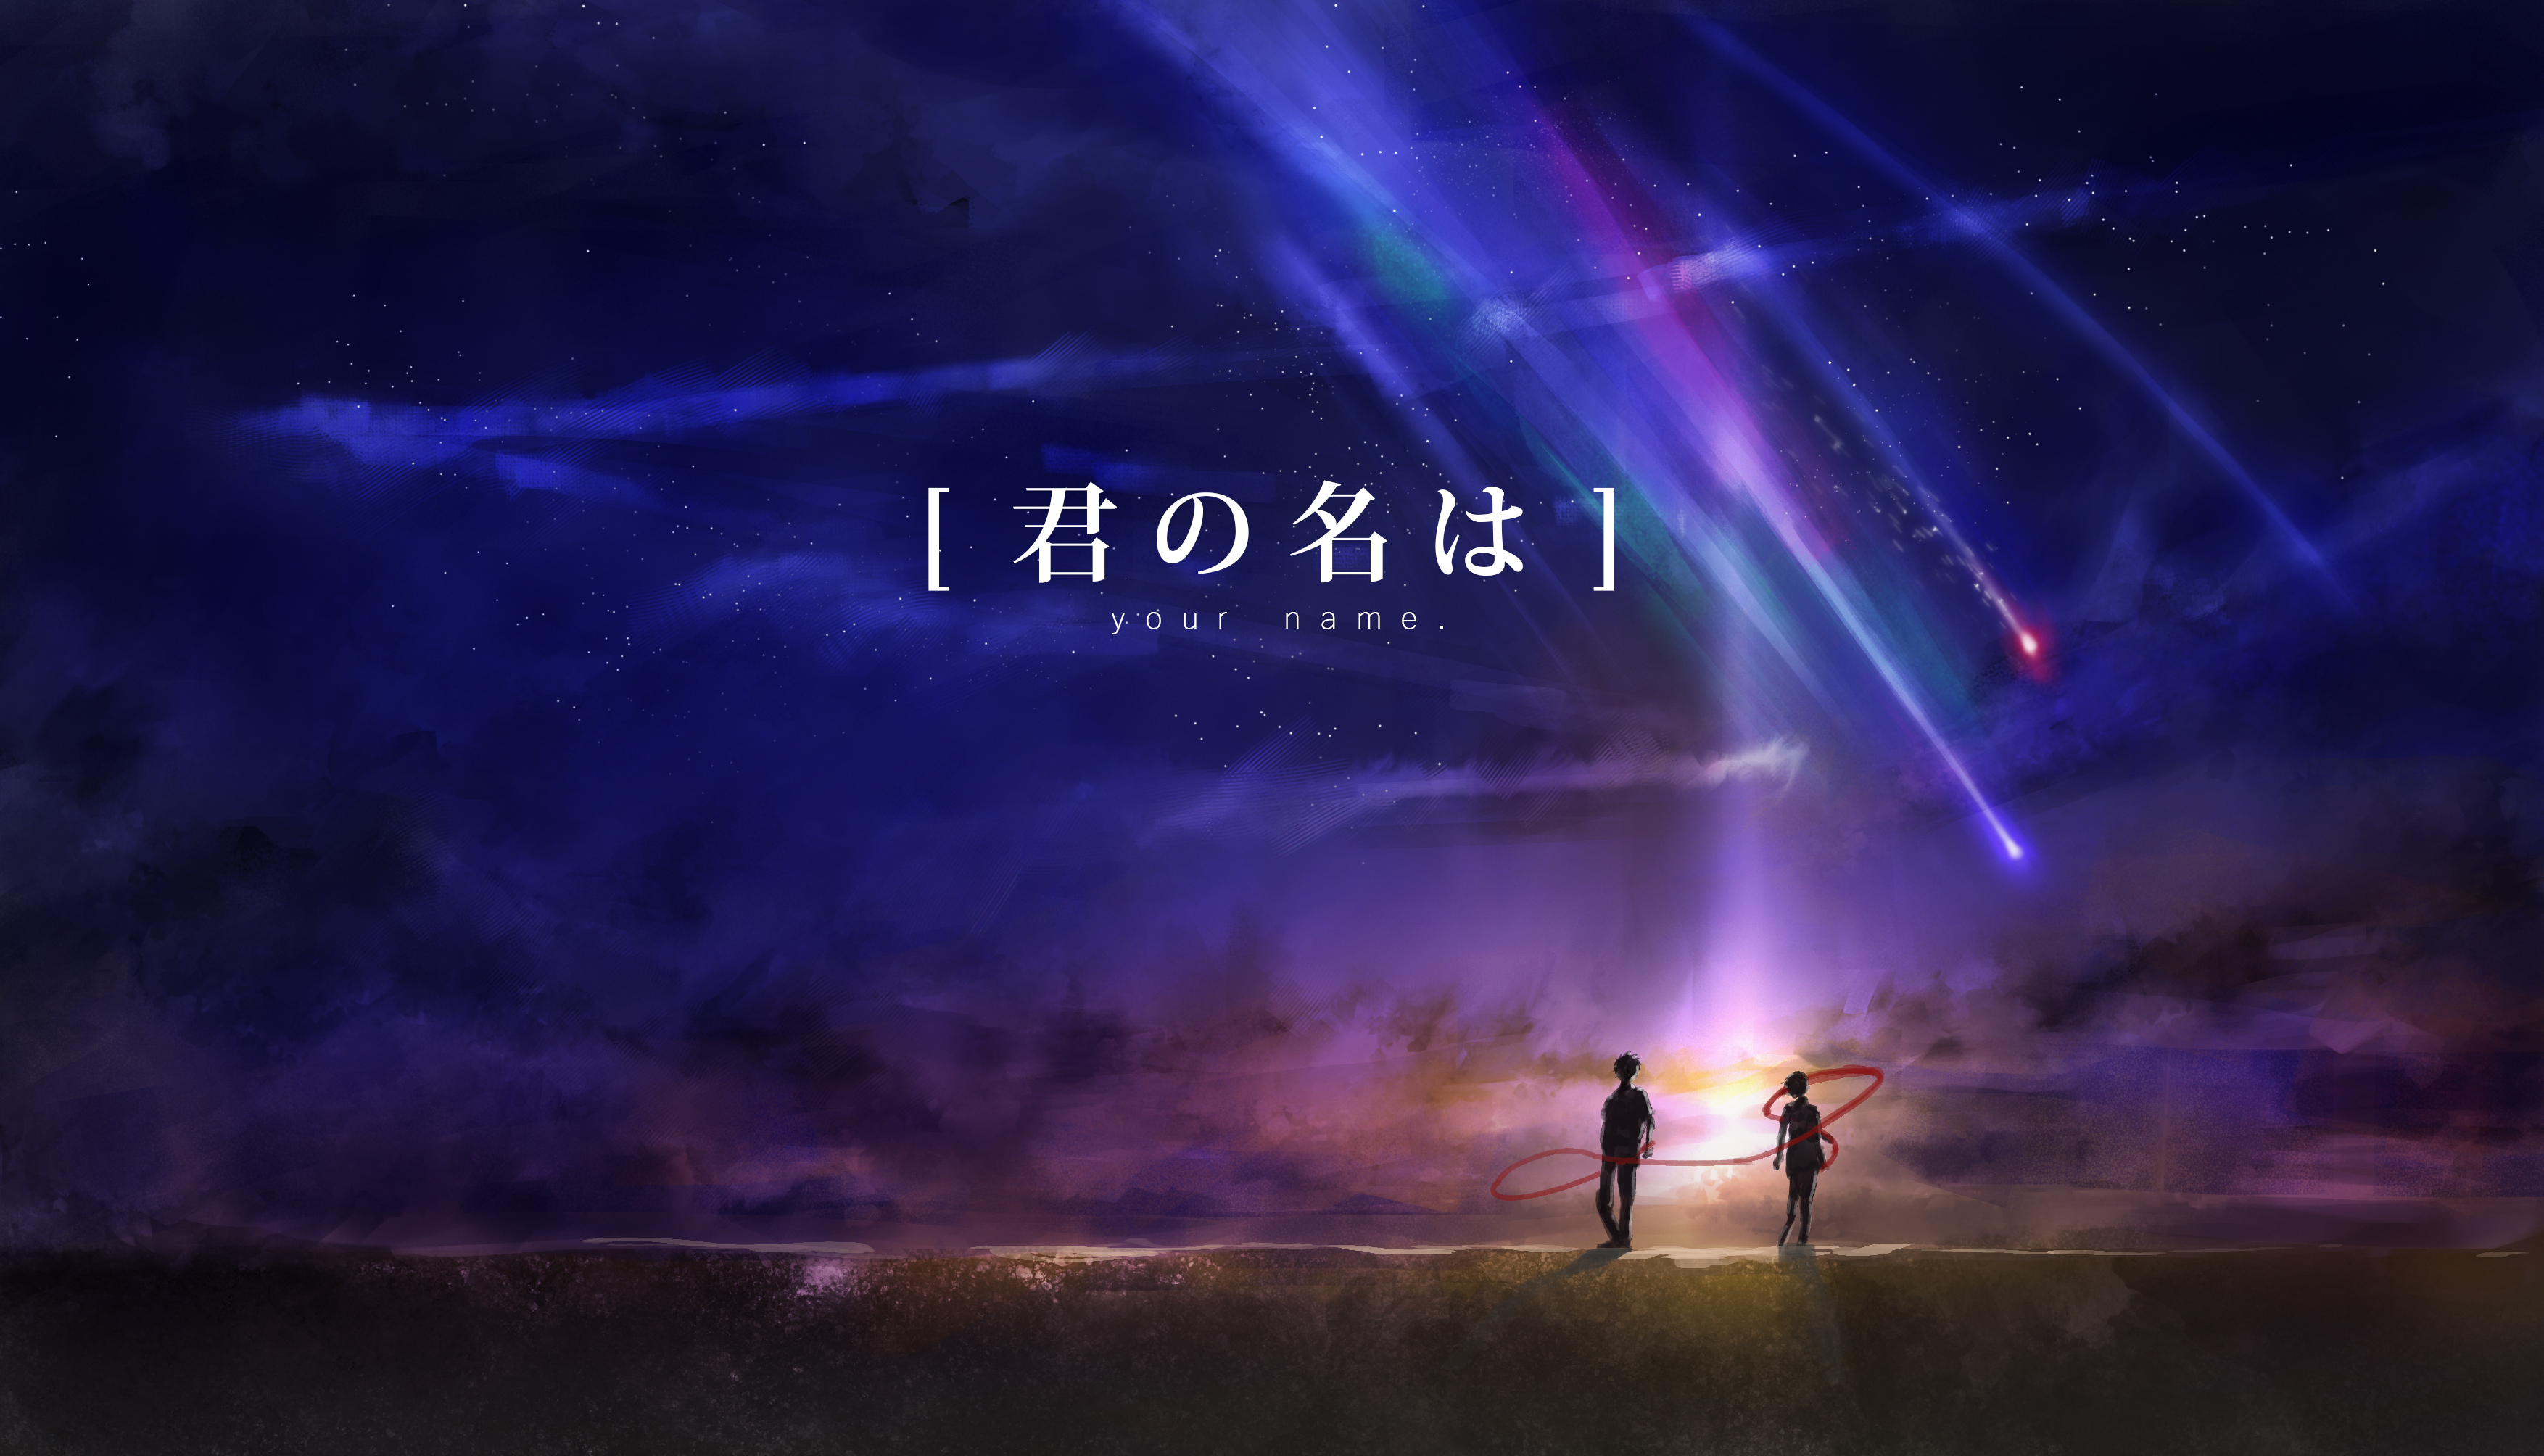 Your name matching wallpapers ♡. Your Name. HD Wallpaper | Background Image | 3508x2008